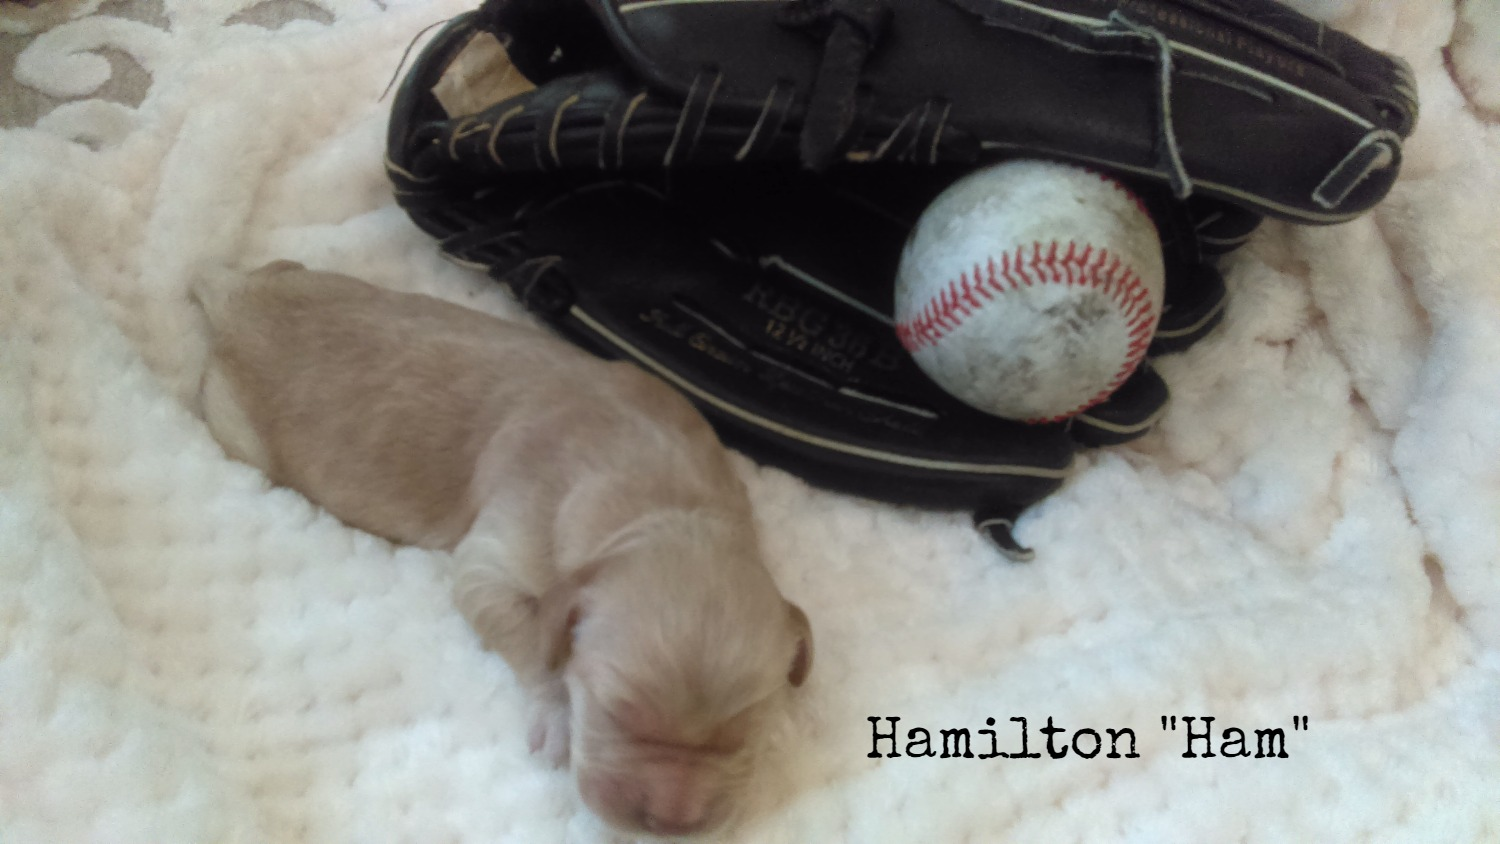 Hamilton_Ham_Birth Weight_2.jpg